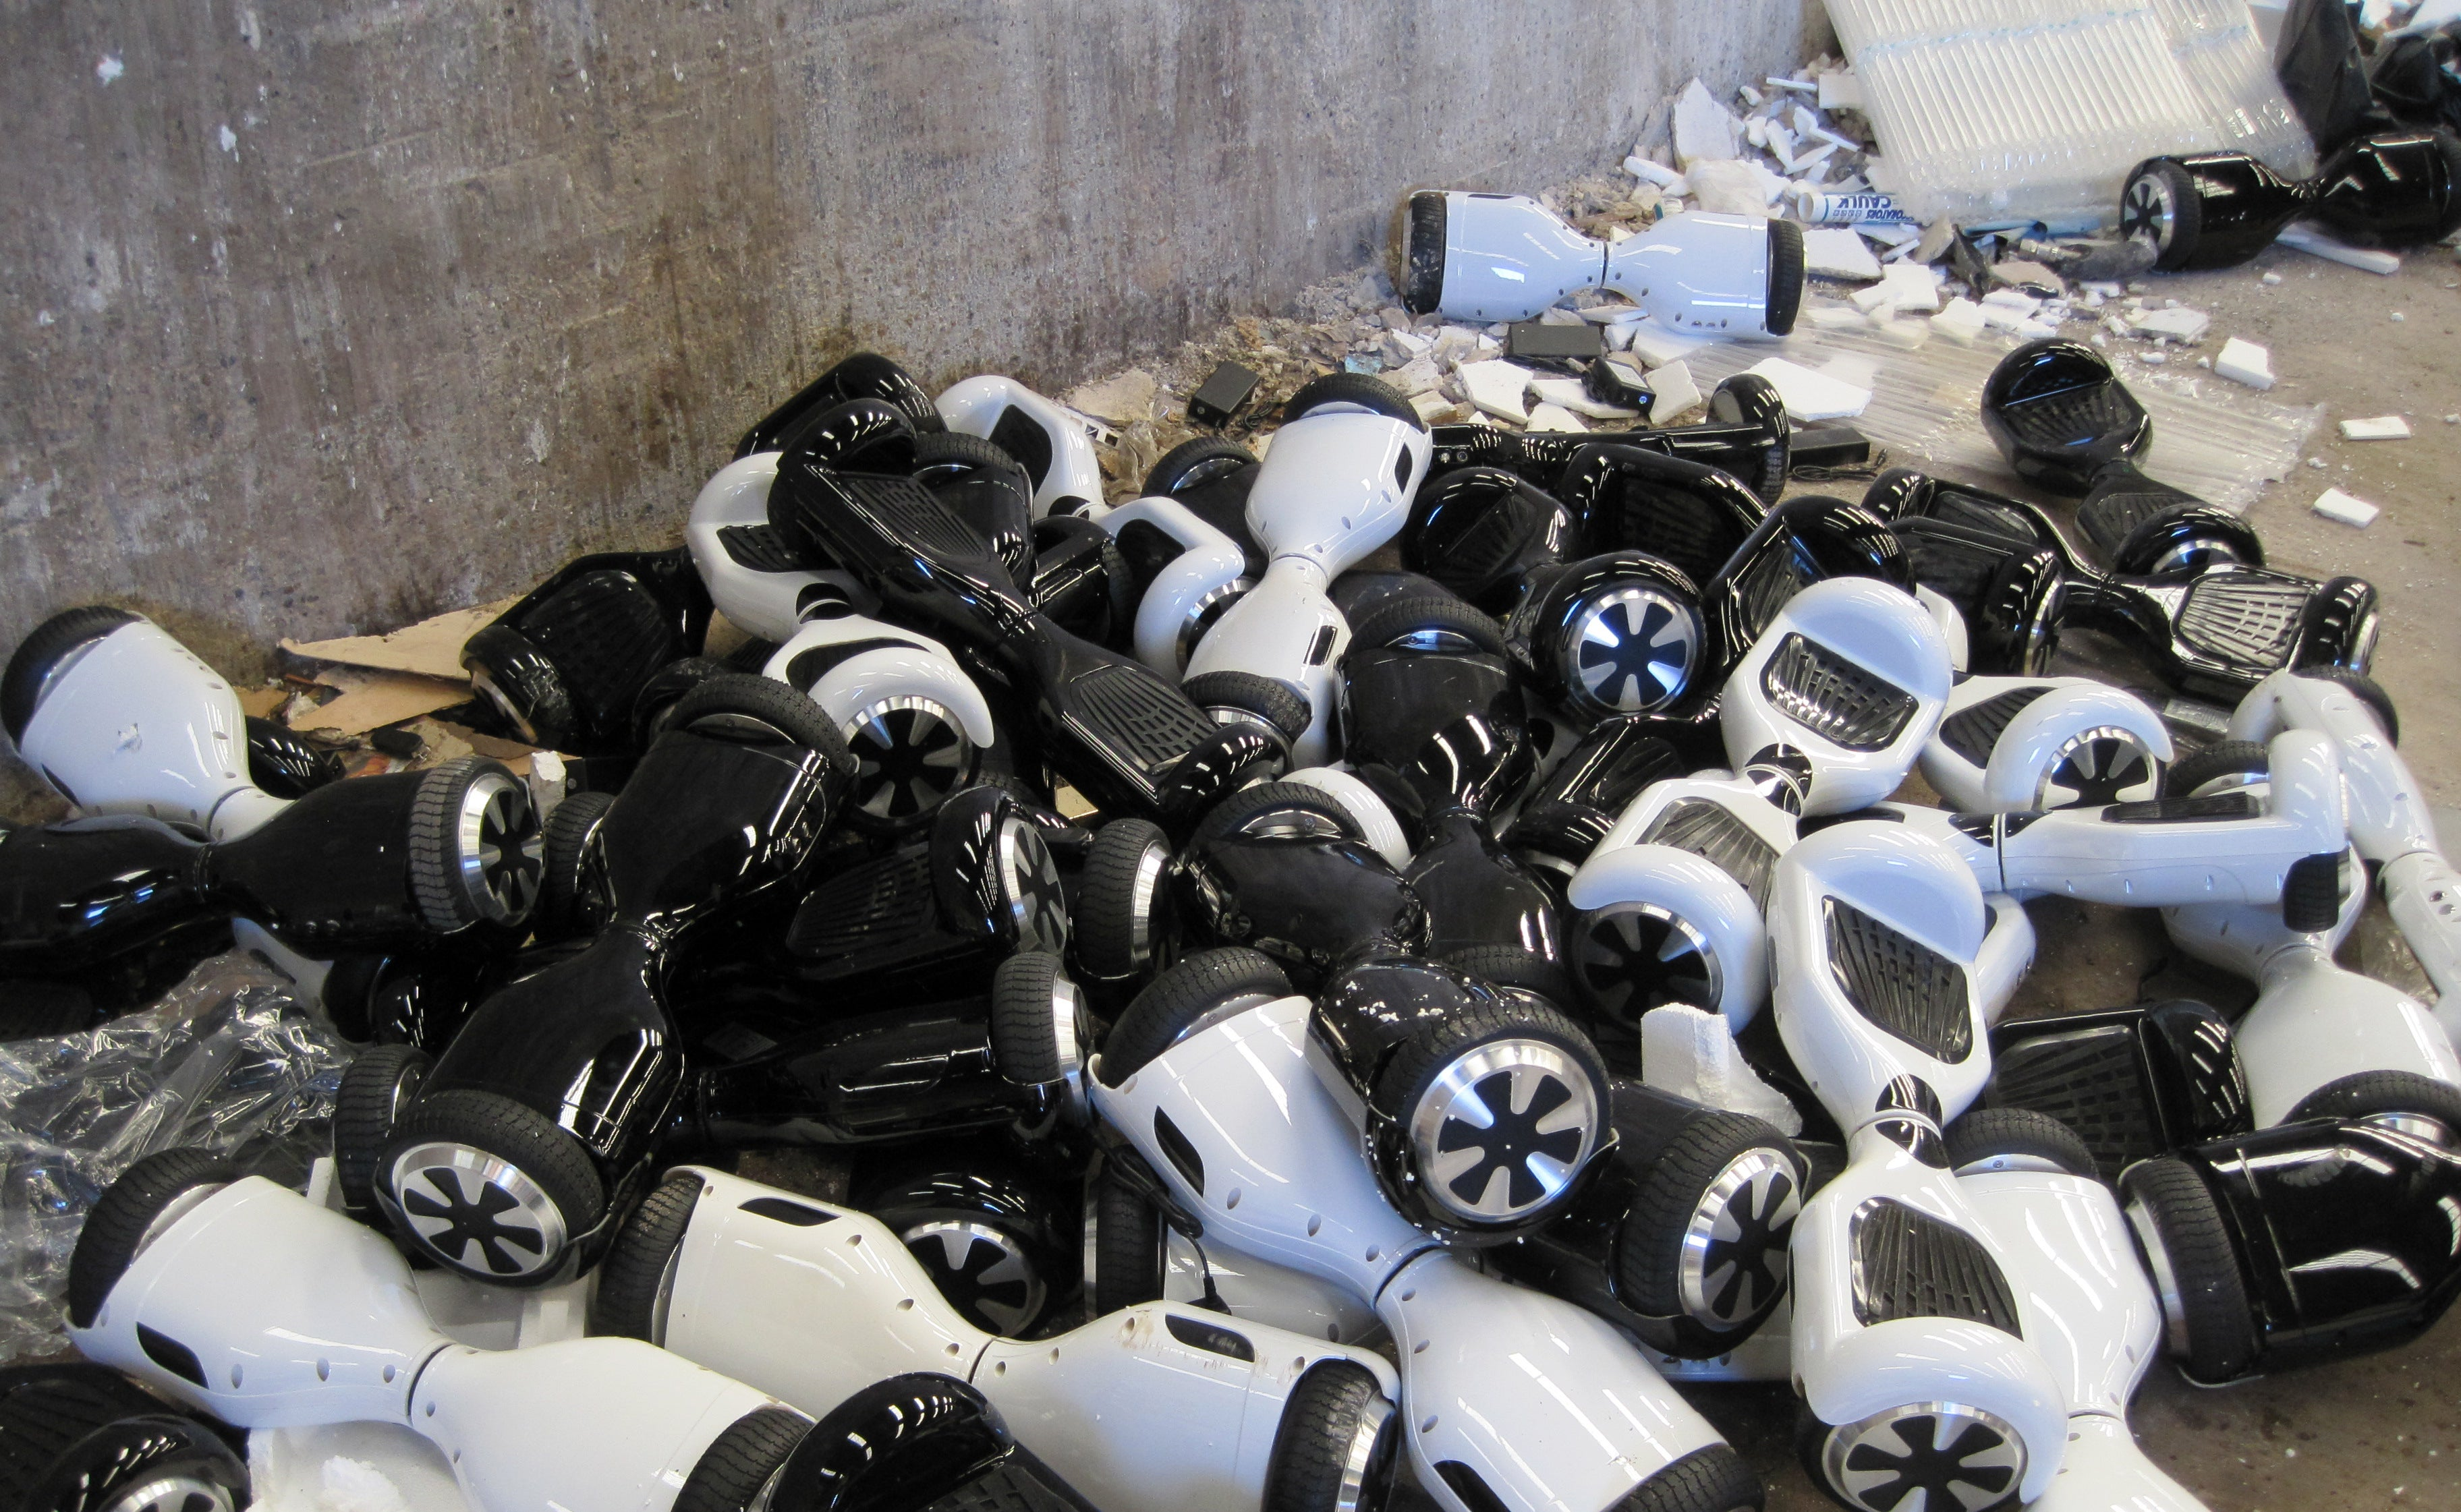 Feast Your Eyes on the Glory of 90 Hoverboards in a Giant, Exploded Pile